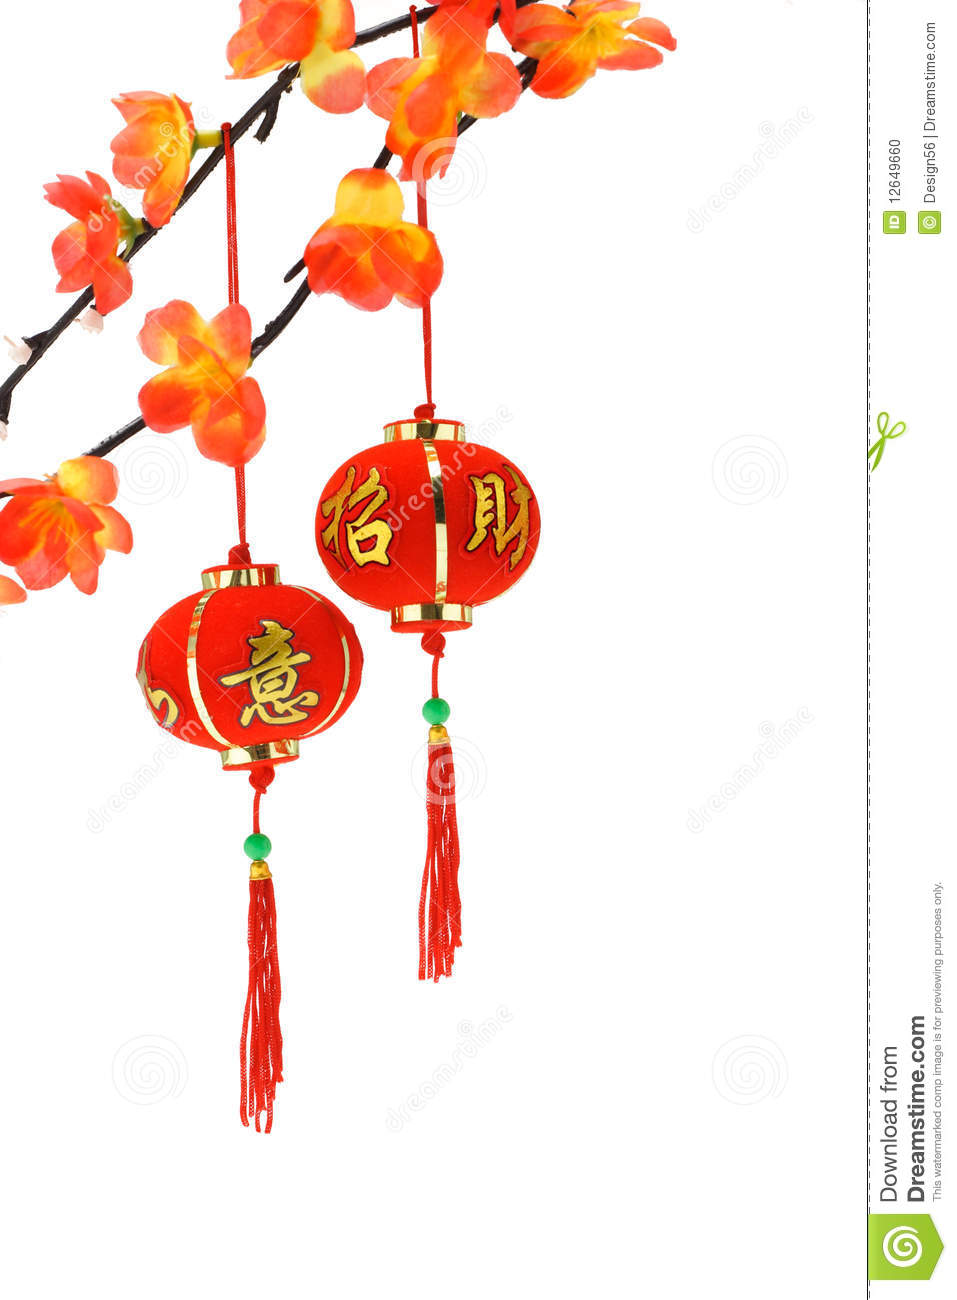 Chinese New Year Lanterns And Plum Blossoms Stock Photo - Image ...